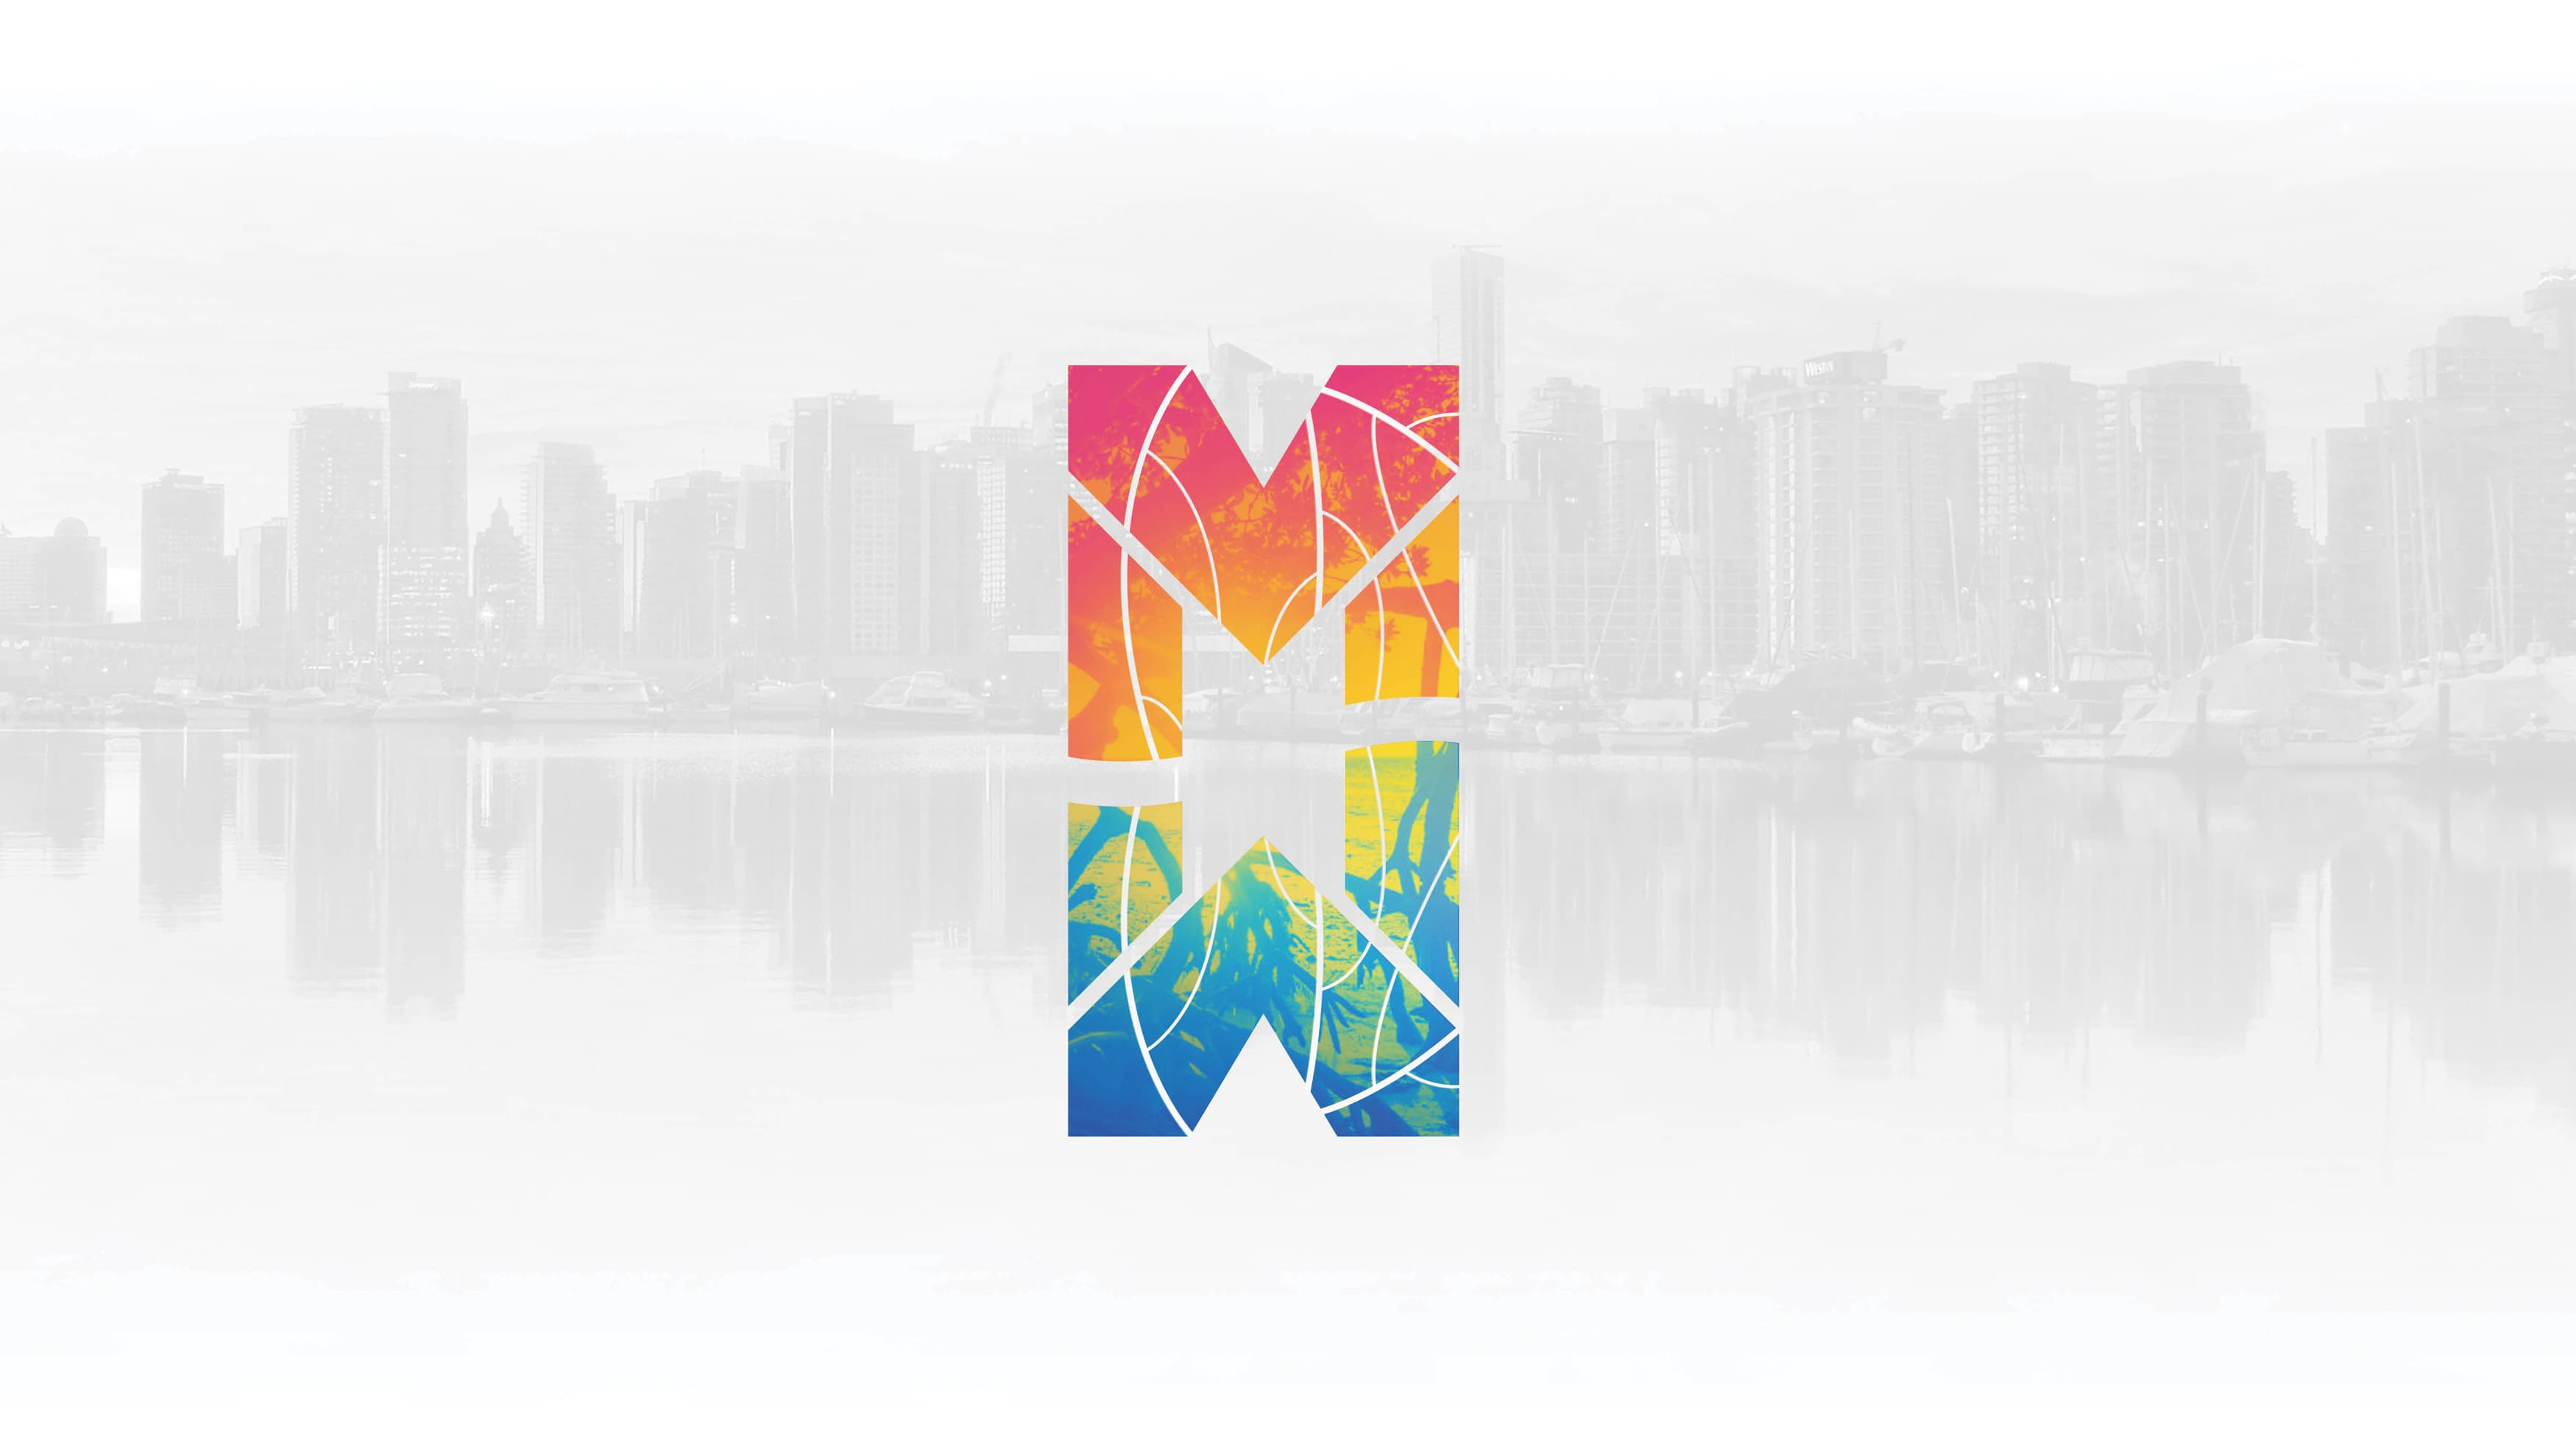 Miami Baywalk logo in multicolor on grey image background.